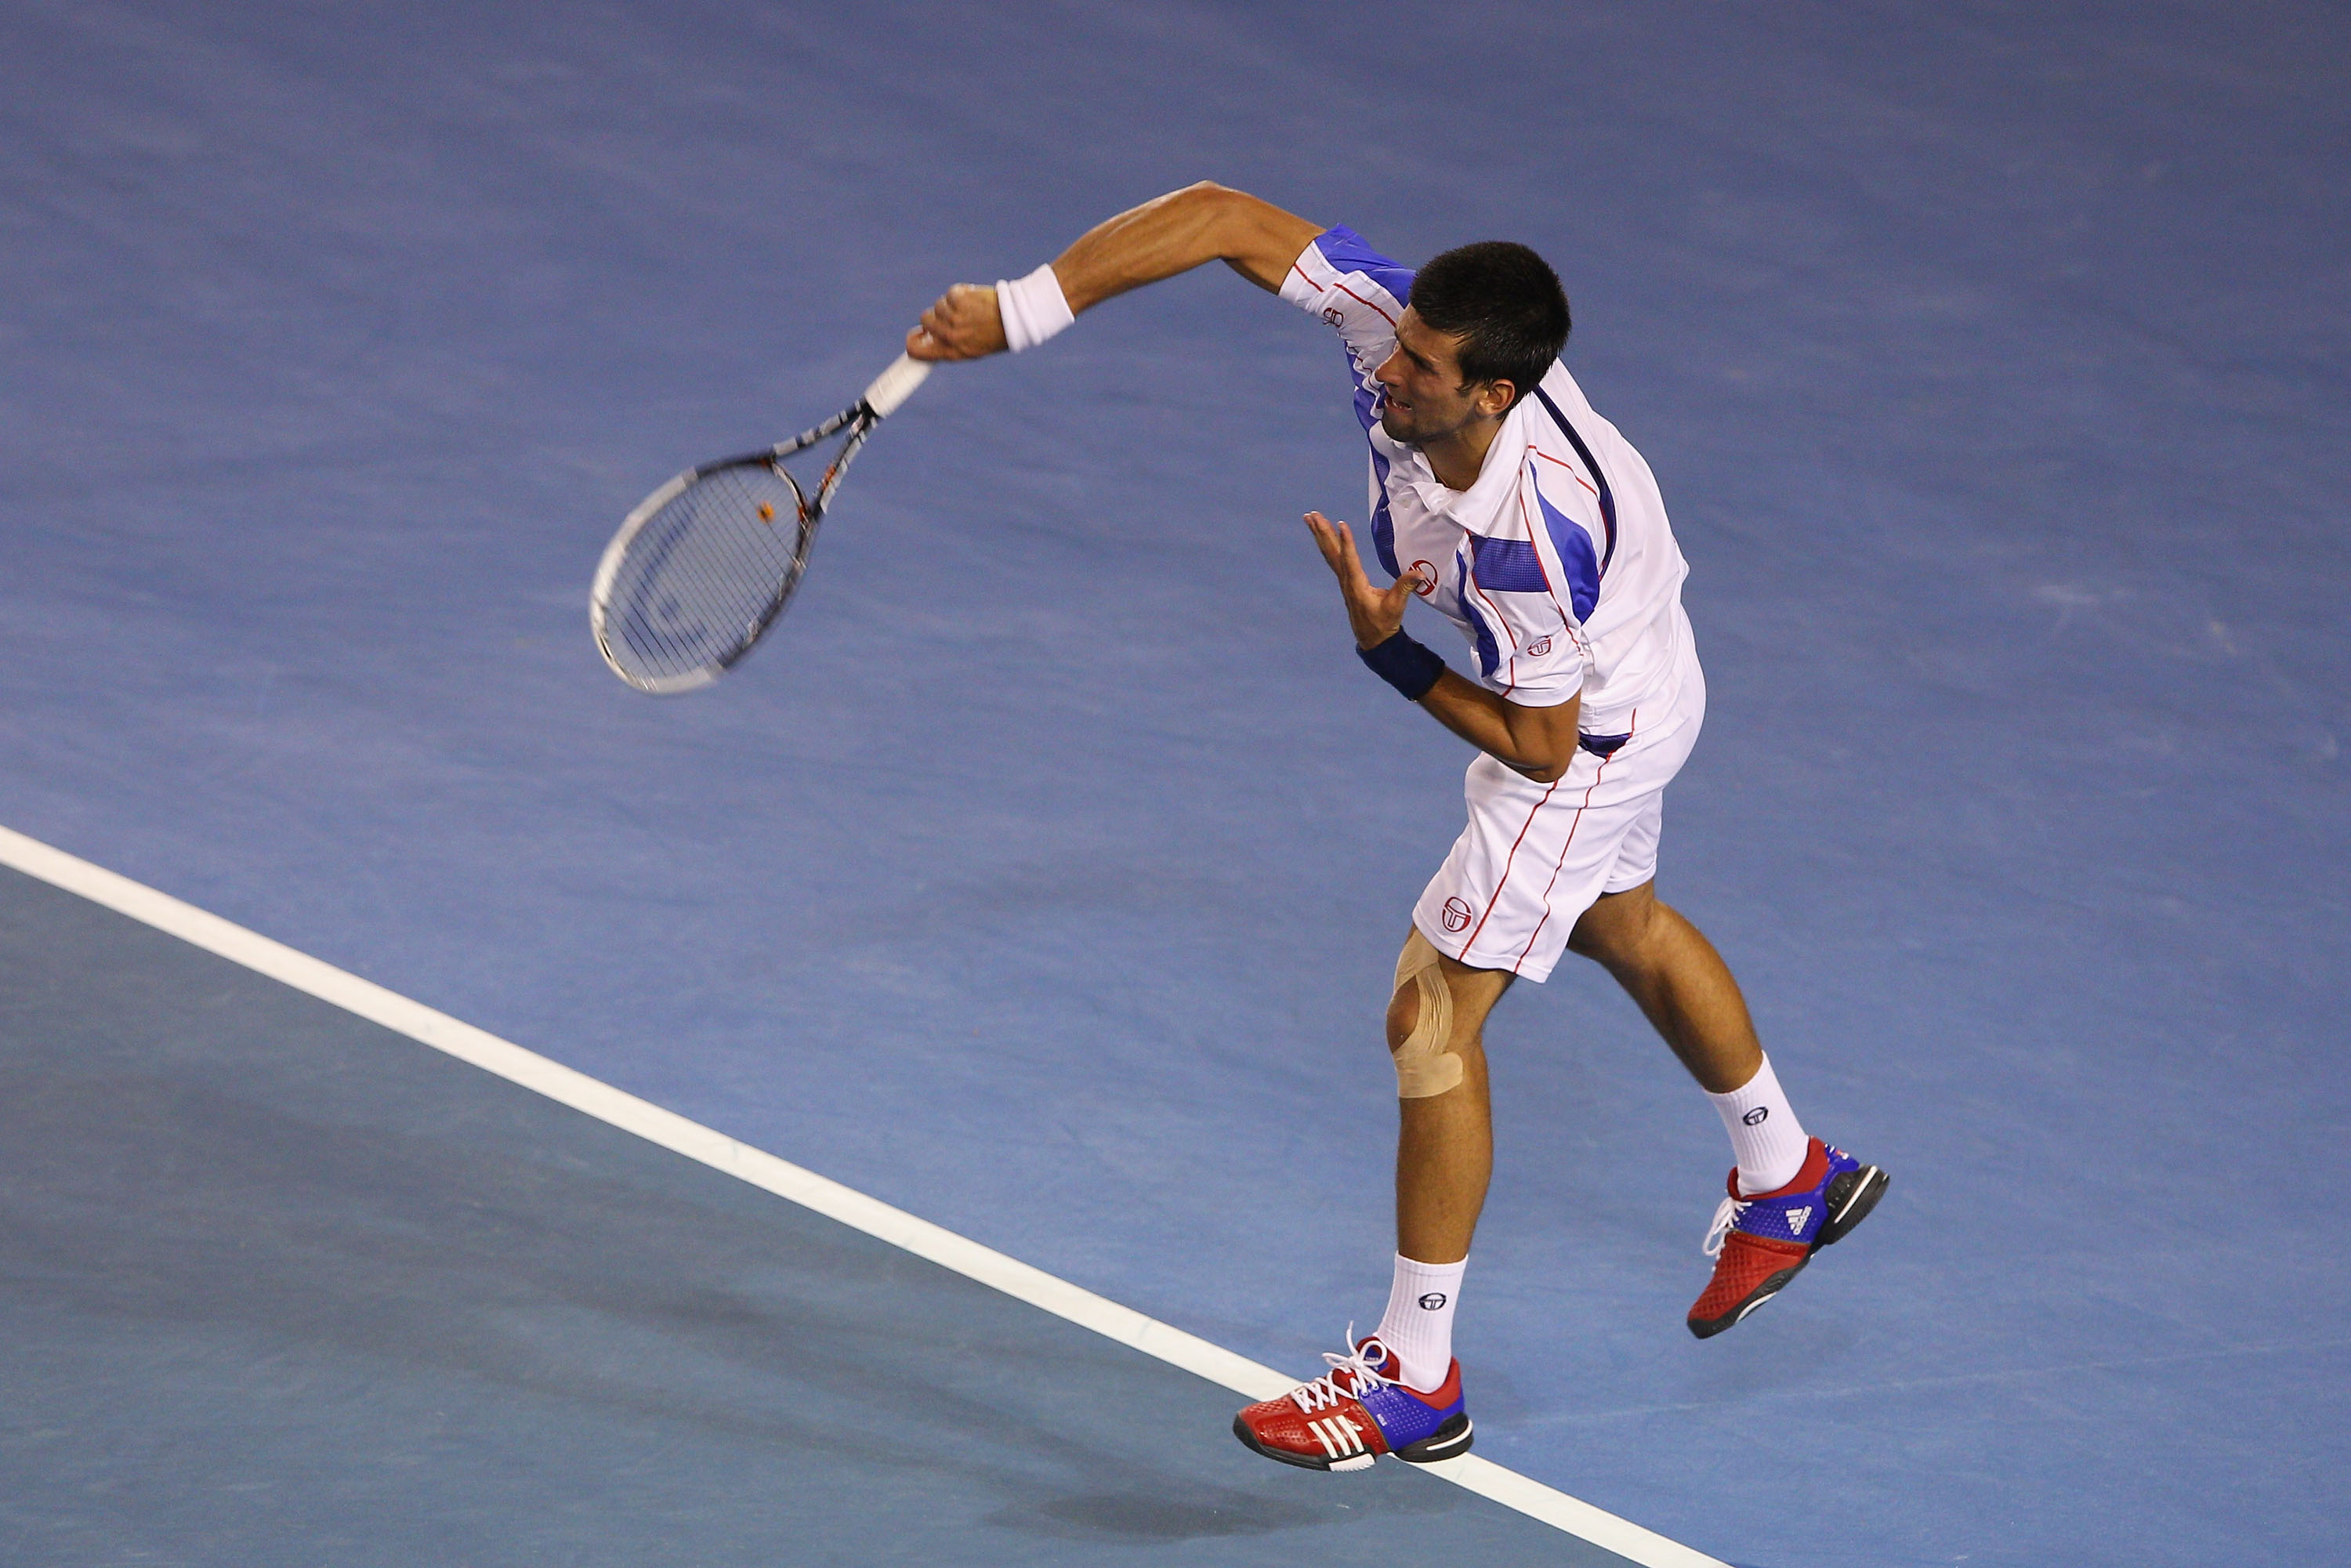 MELBOURNE, AUSTRALIA - JANUARY 30:  Novak Djokovic of Serbia serves in his men's final match against Andy Murray of Great Britain during day fourteen of the 2011 Australian Open at Melbourne Park on January 30, 2011 in Melbourne, Australia.  (Photo by Cam